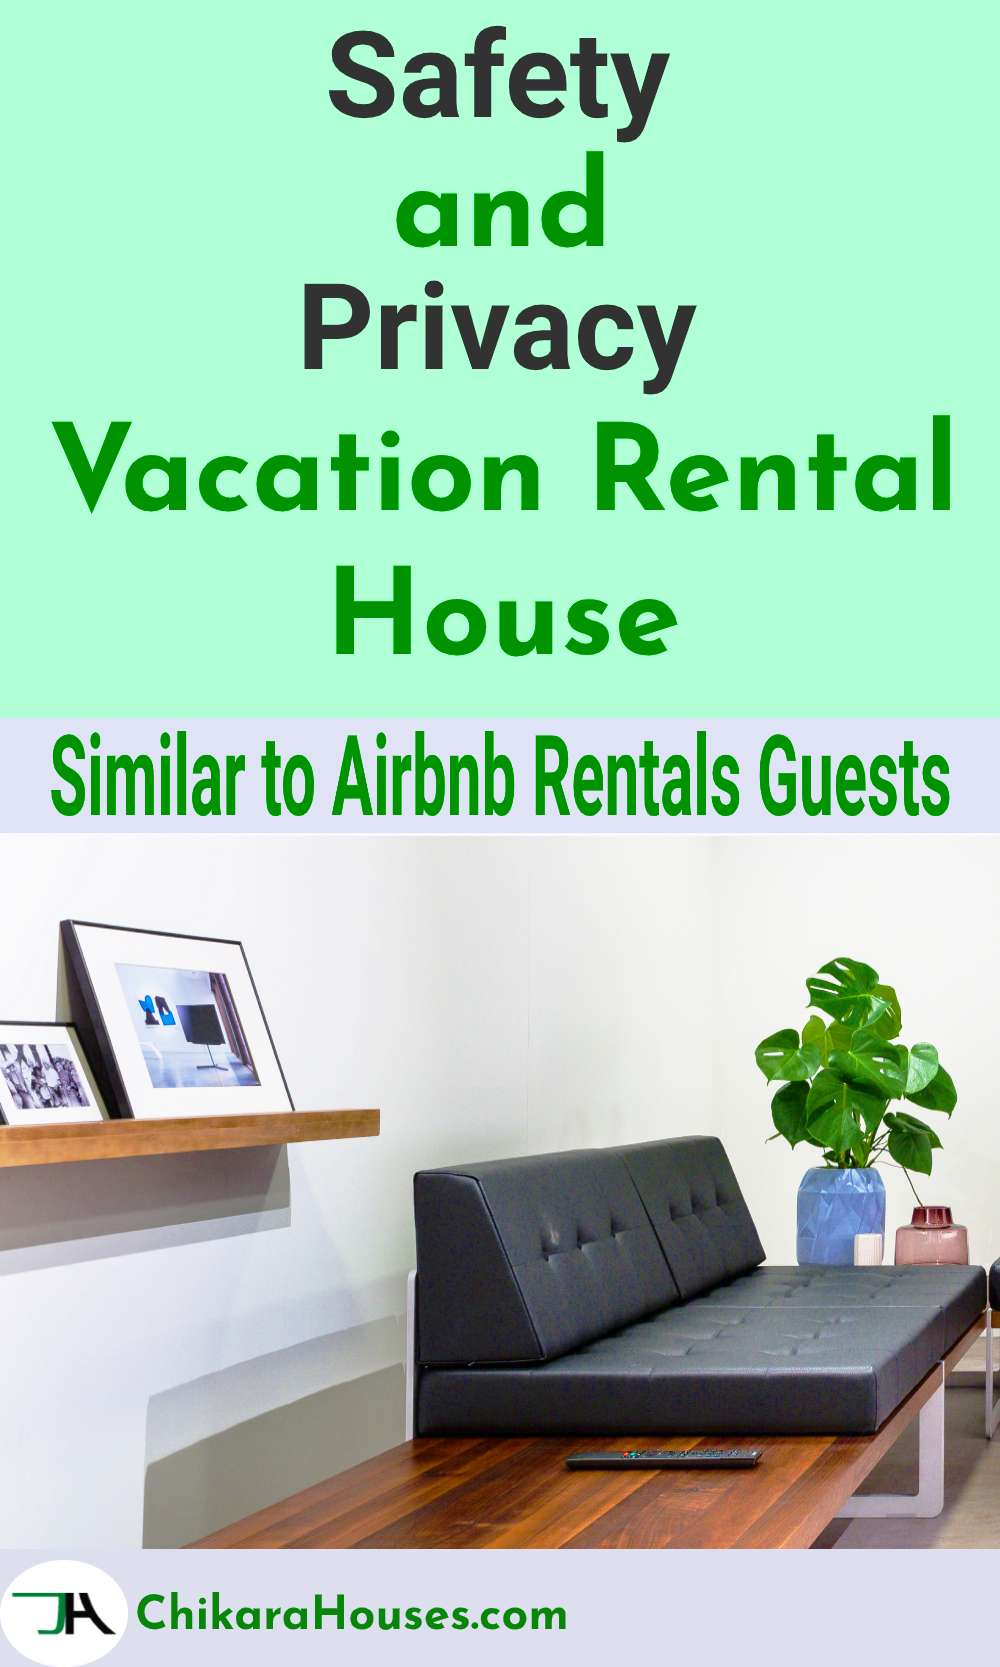 safety and privacy, vacation rental house, airbnb rental